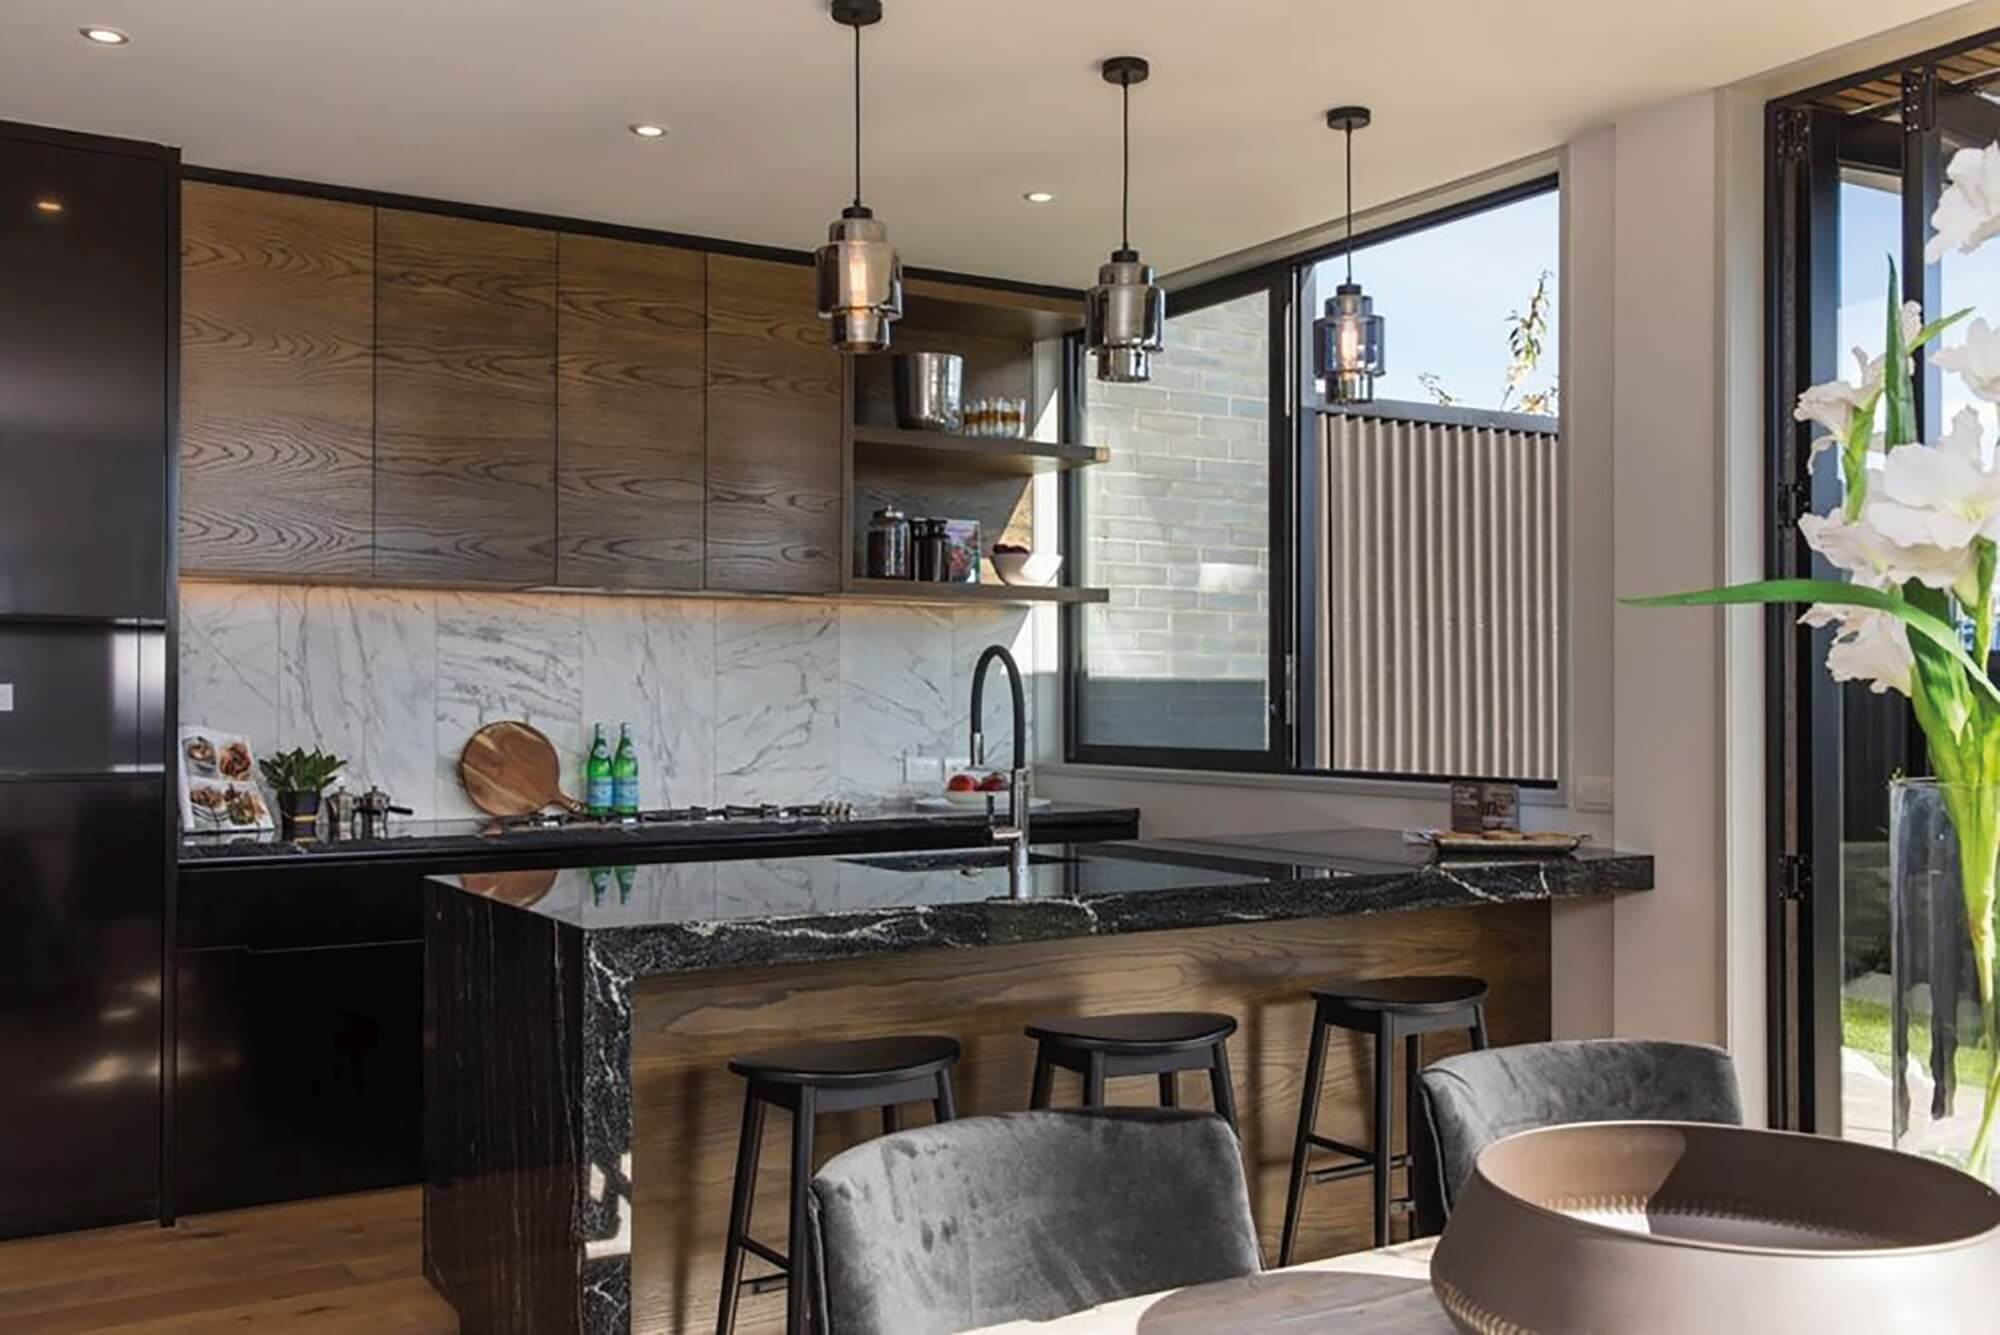 Warm kitchen designed with brown wood cabinets and dark marbled counters.